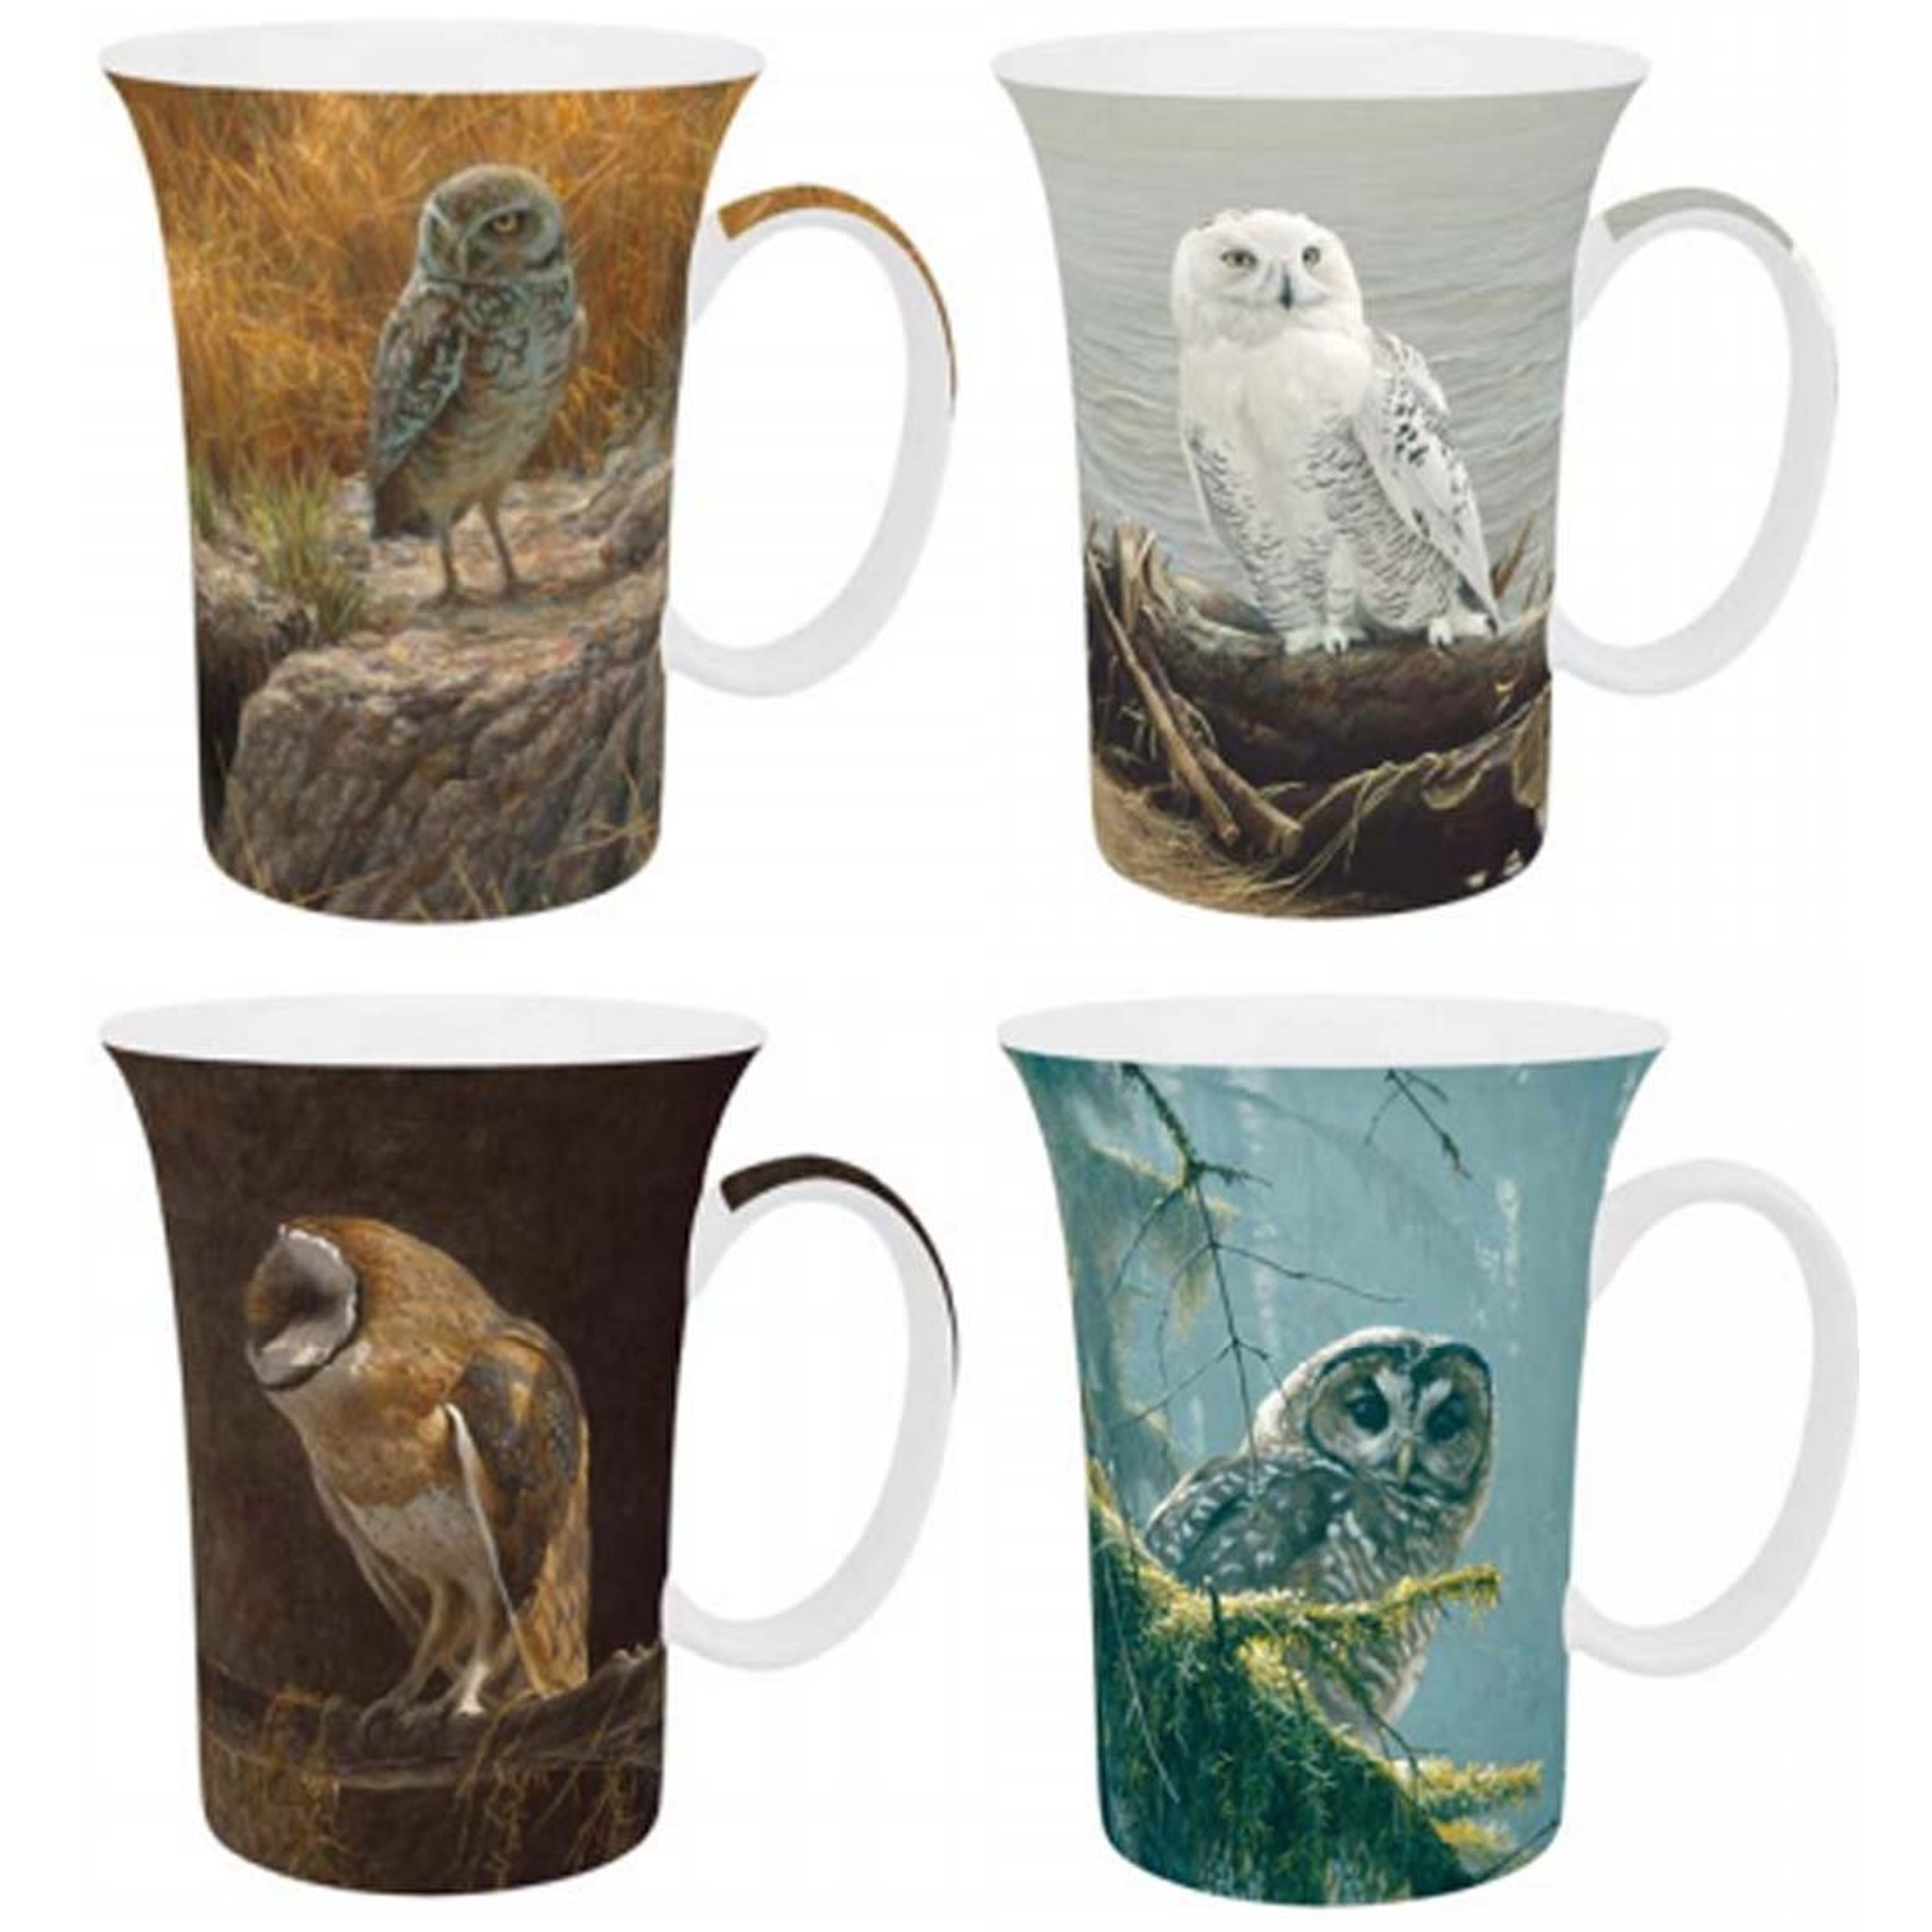 Owl Bone China Mug Set Mcintosh Trading Owl Mug